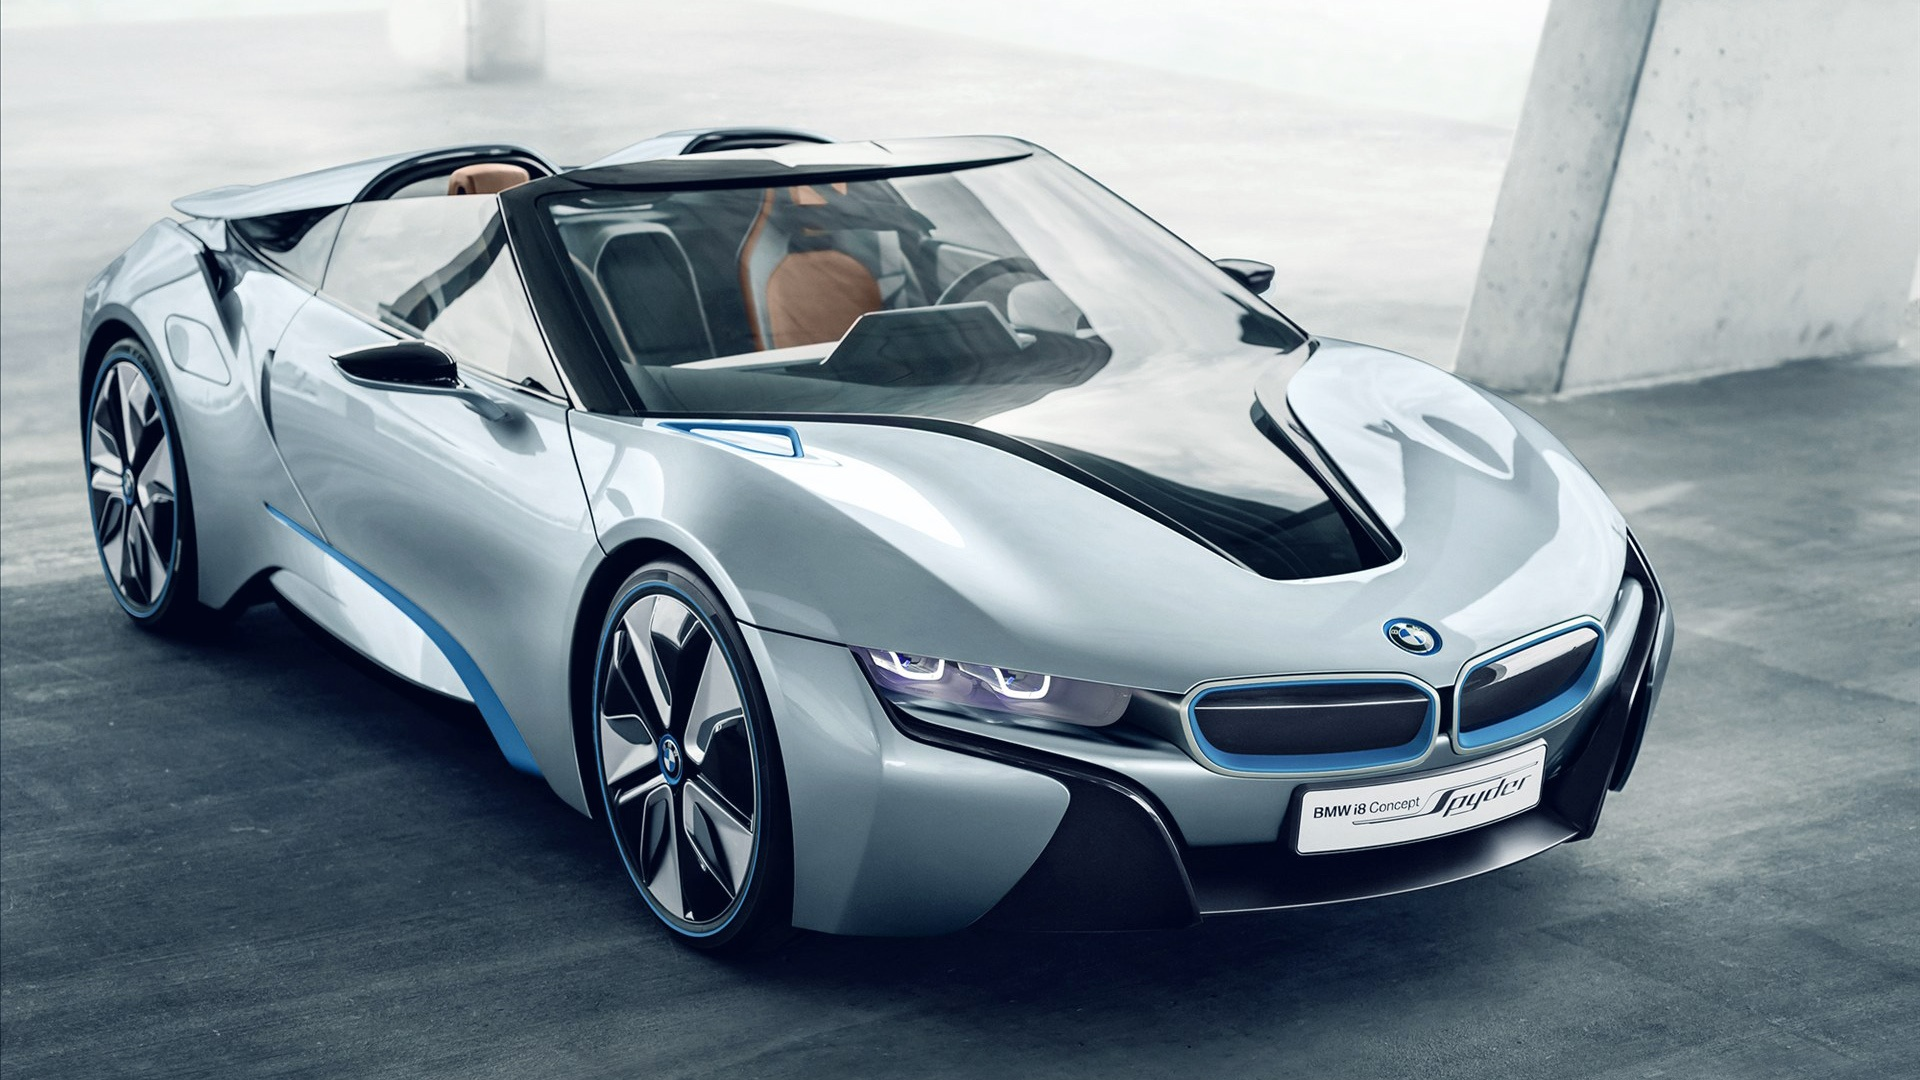 BMW i8 Spyder Concept Car